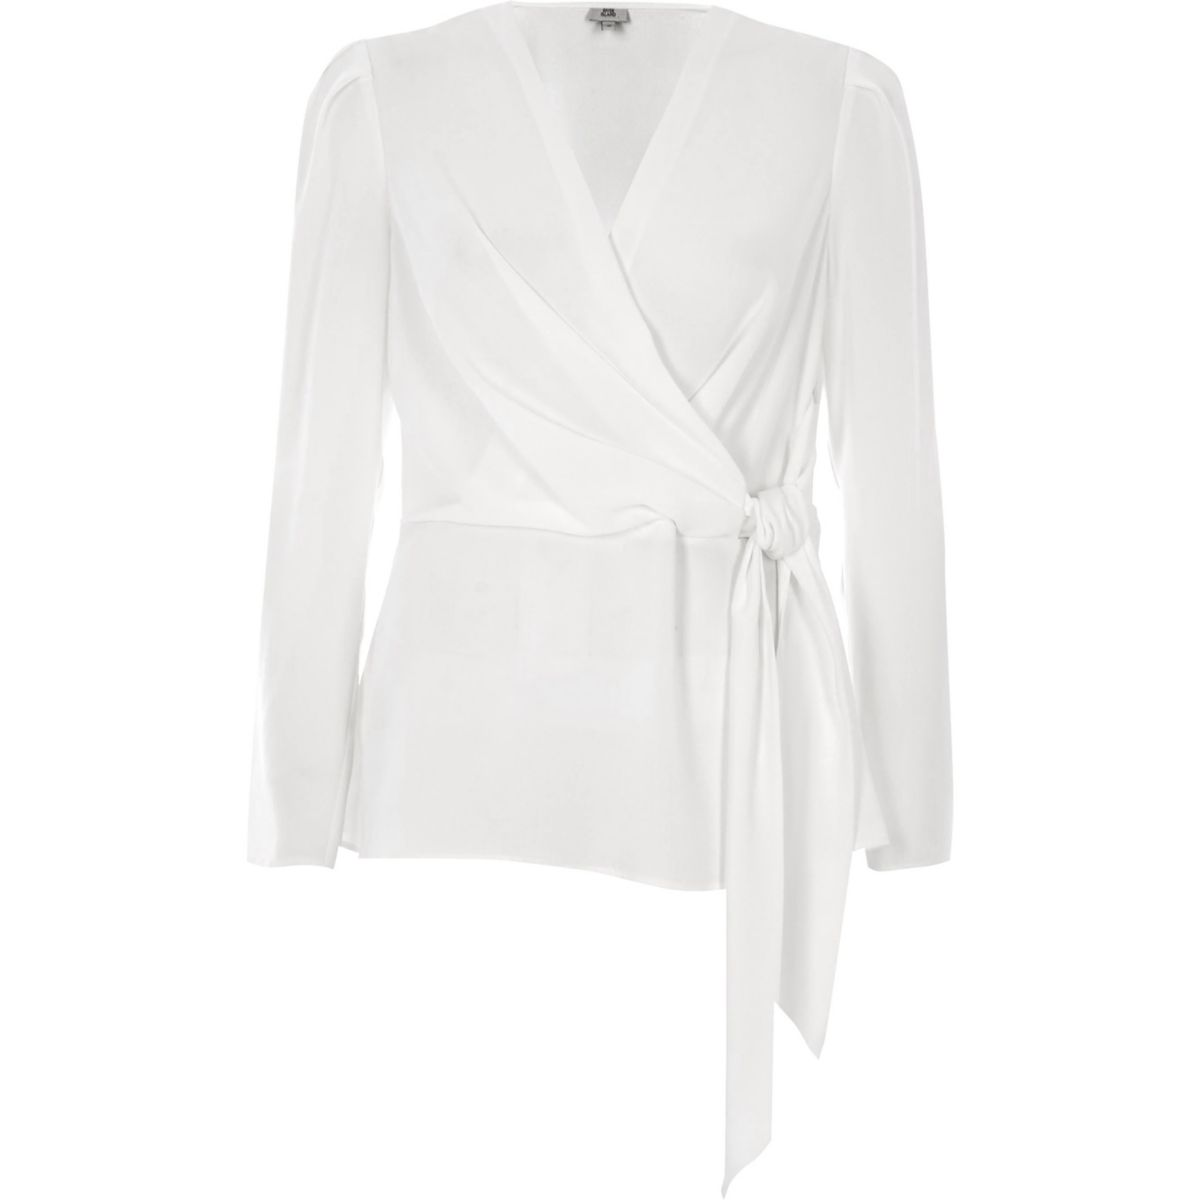 River Island Blouse - ivory/black